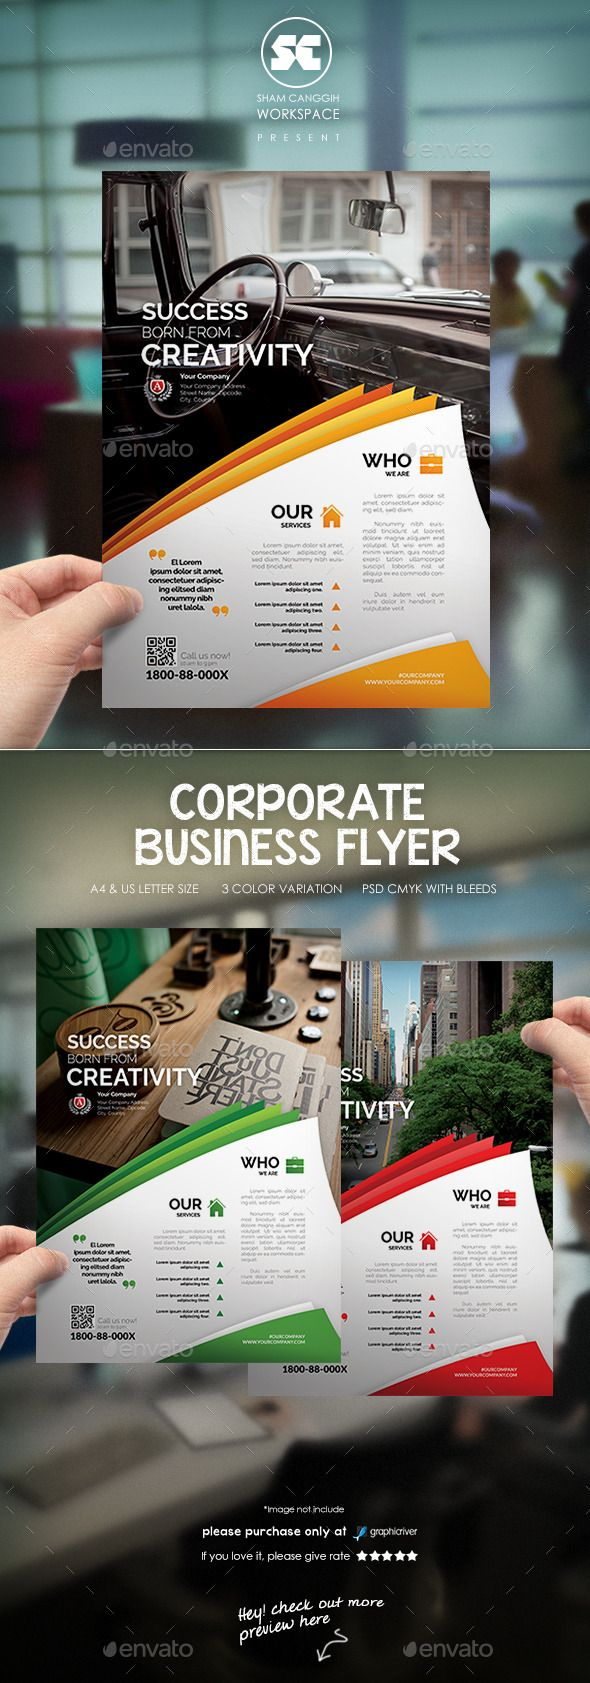 corporate business flyer business flyer templates